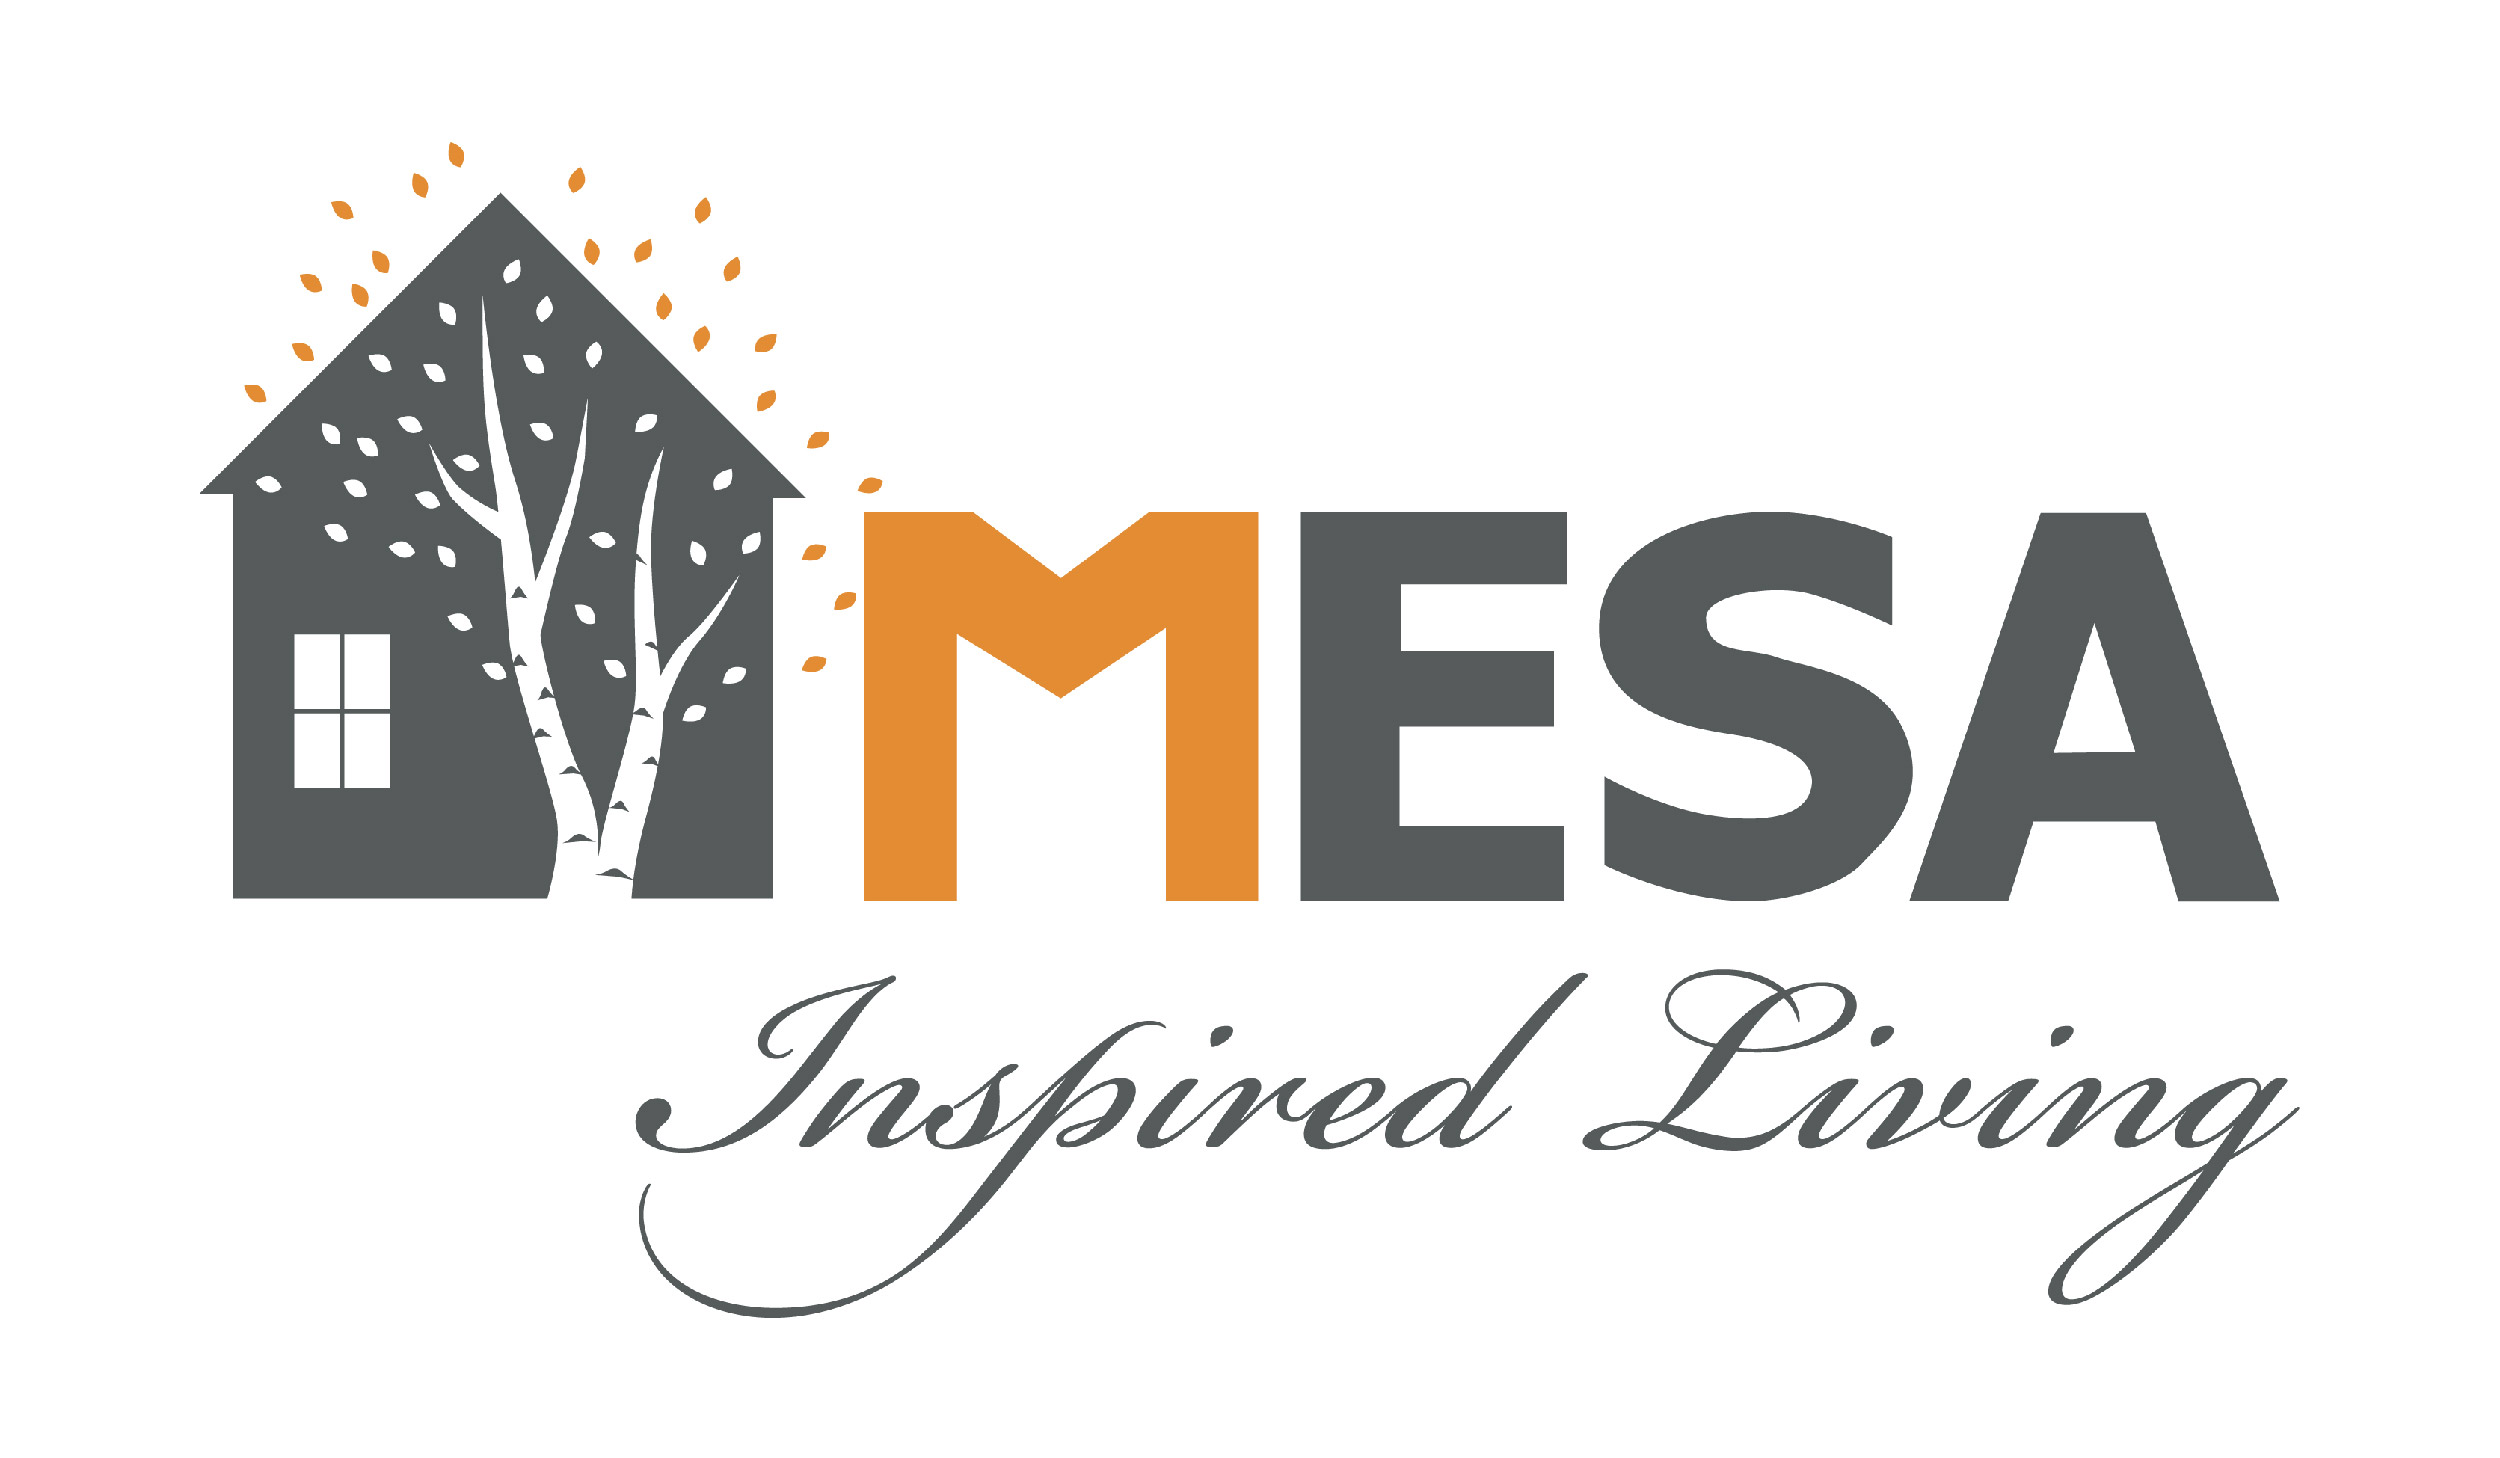 Mesa Home  - An industry leader in wire and table top products for over 15 years. At Mesa we create distinctive affordable home goods with a focus on entertaining - products that enhance and enliven indoor and outdoor dining spaces, kitchens, and baths to better organize your living environment.